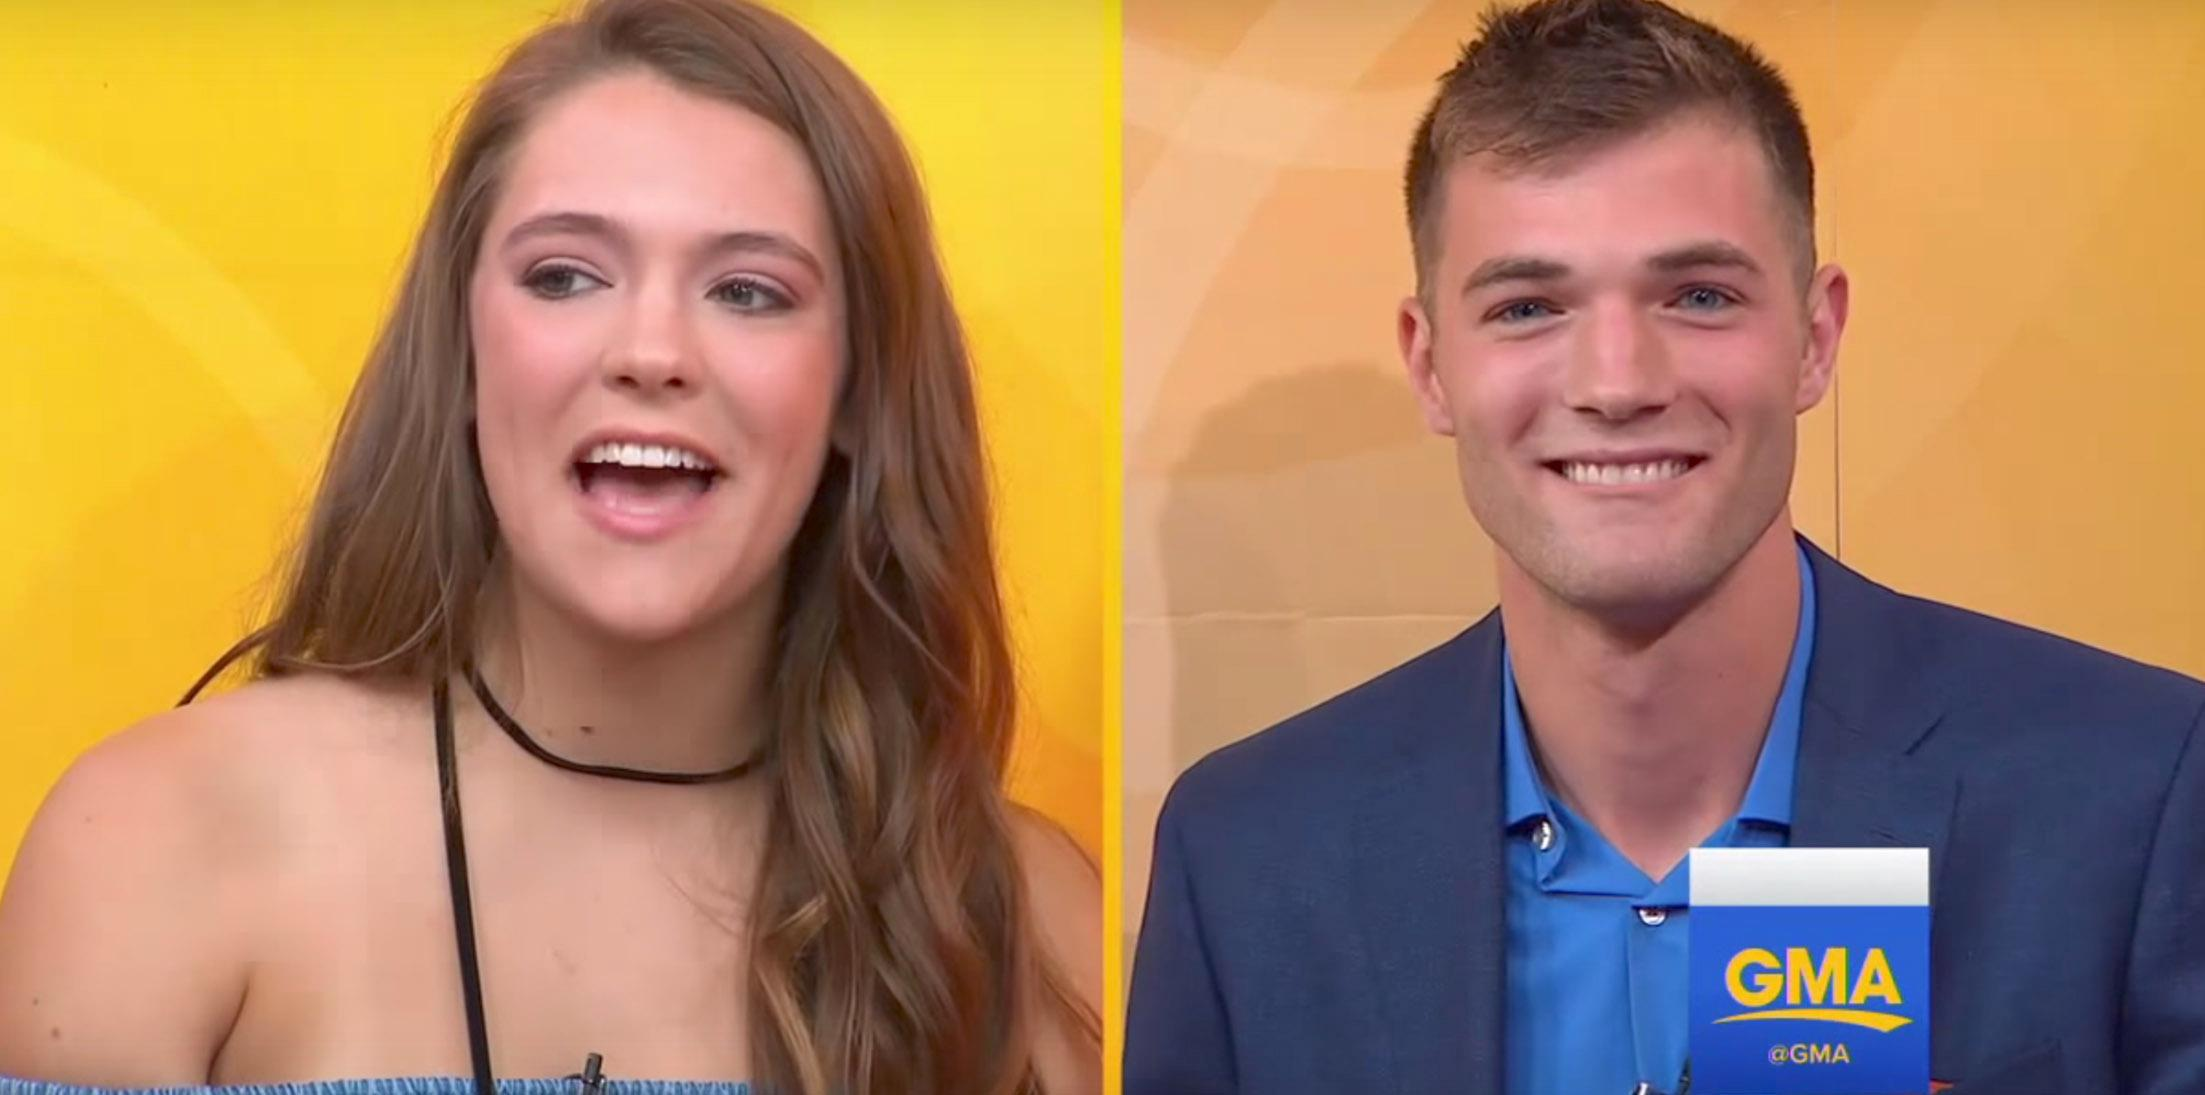 Tinder couple meets three years messaging feature